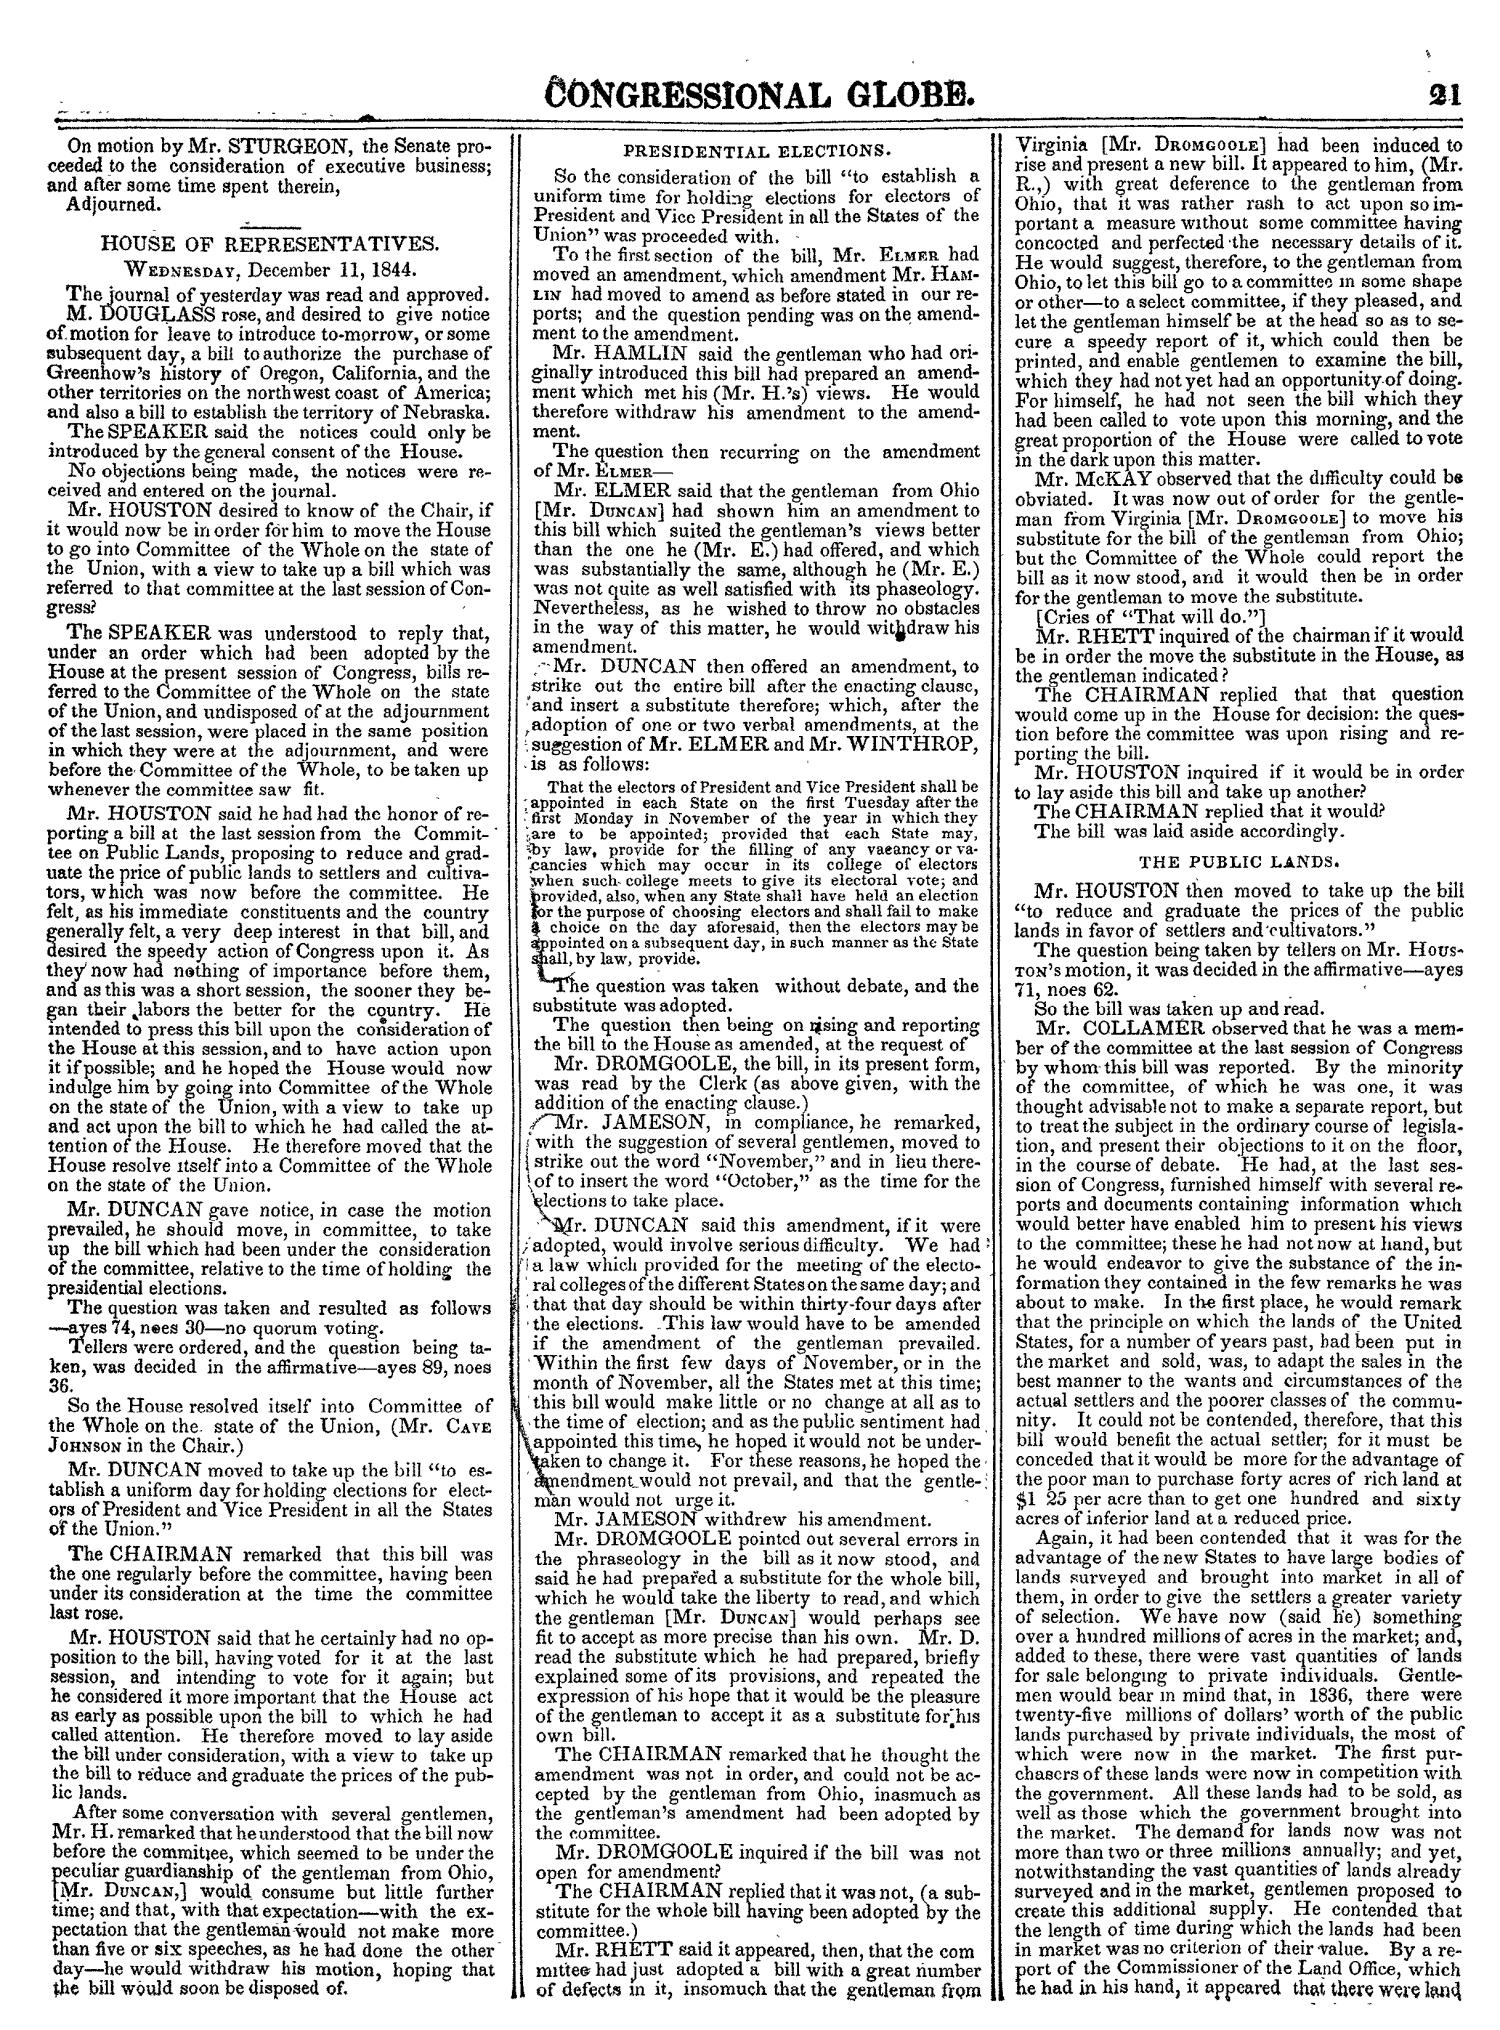 The Congressional Globe, Volume 14: Twenty-Eighth Congress, Second Session                                                                                                      21